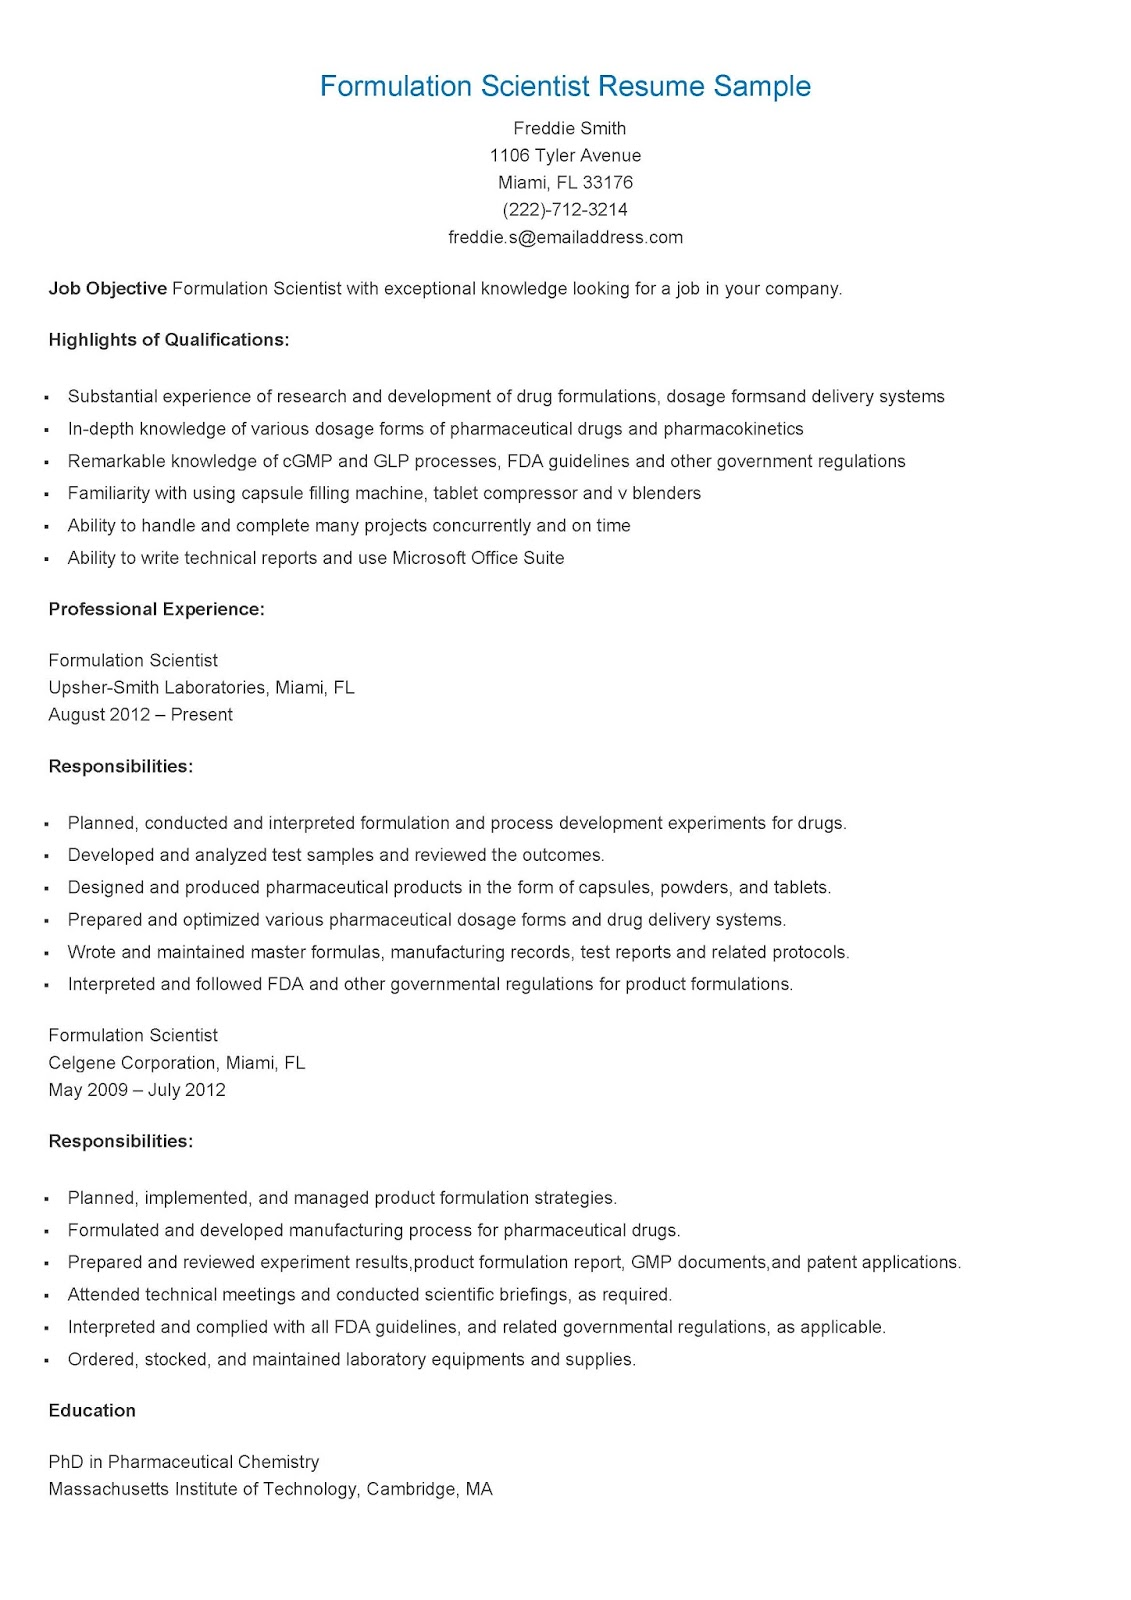 resume sles formulation scientist resume sle